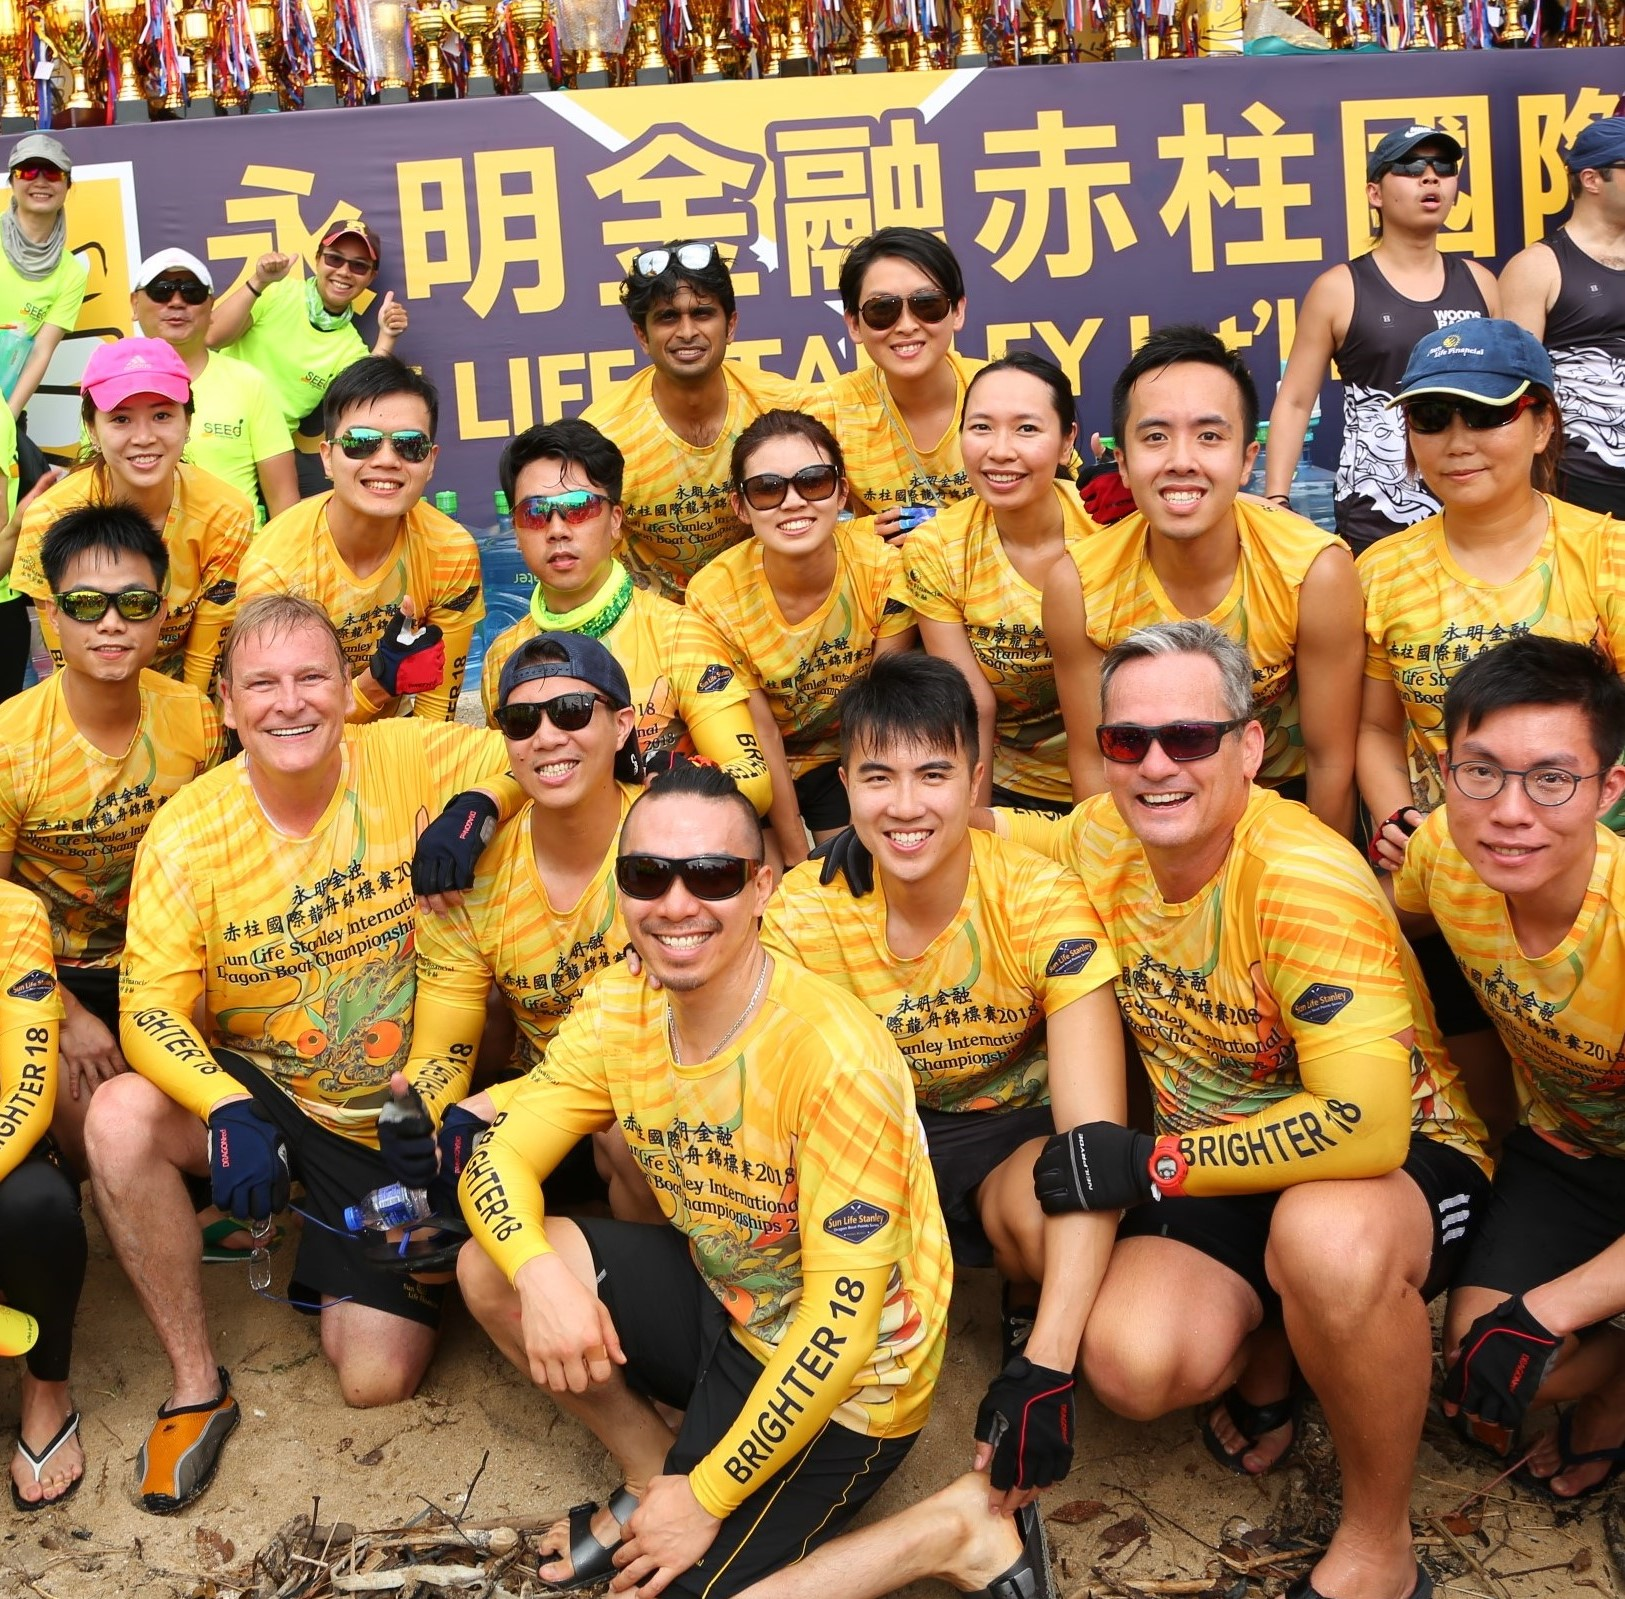 Sun Life Stanley International Dragon Boat Championships